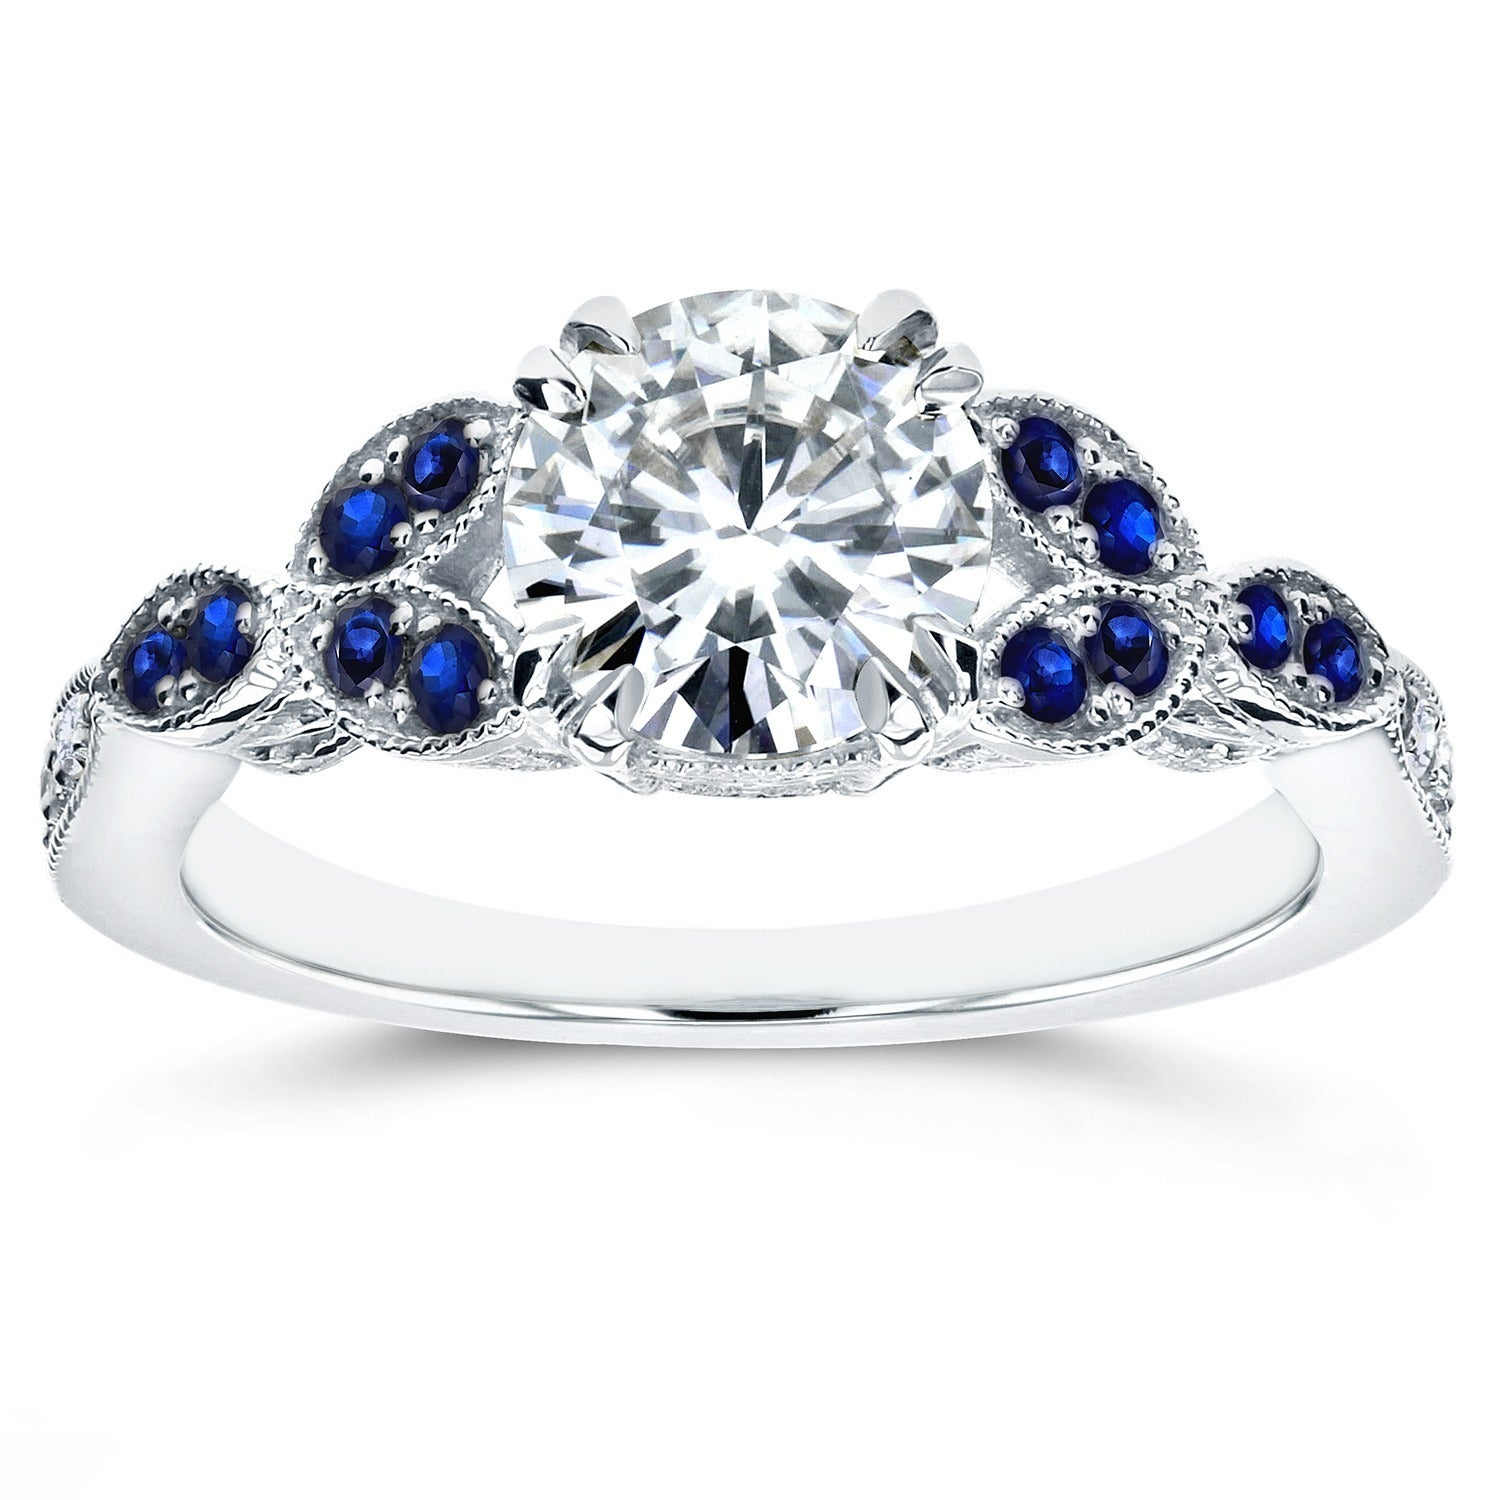 at platinum ring police diamond wedding of line engagement trinity gold ceramic cartier rings band thin blue